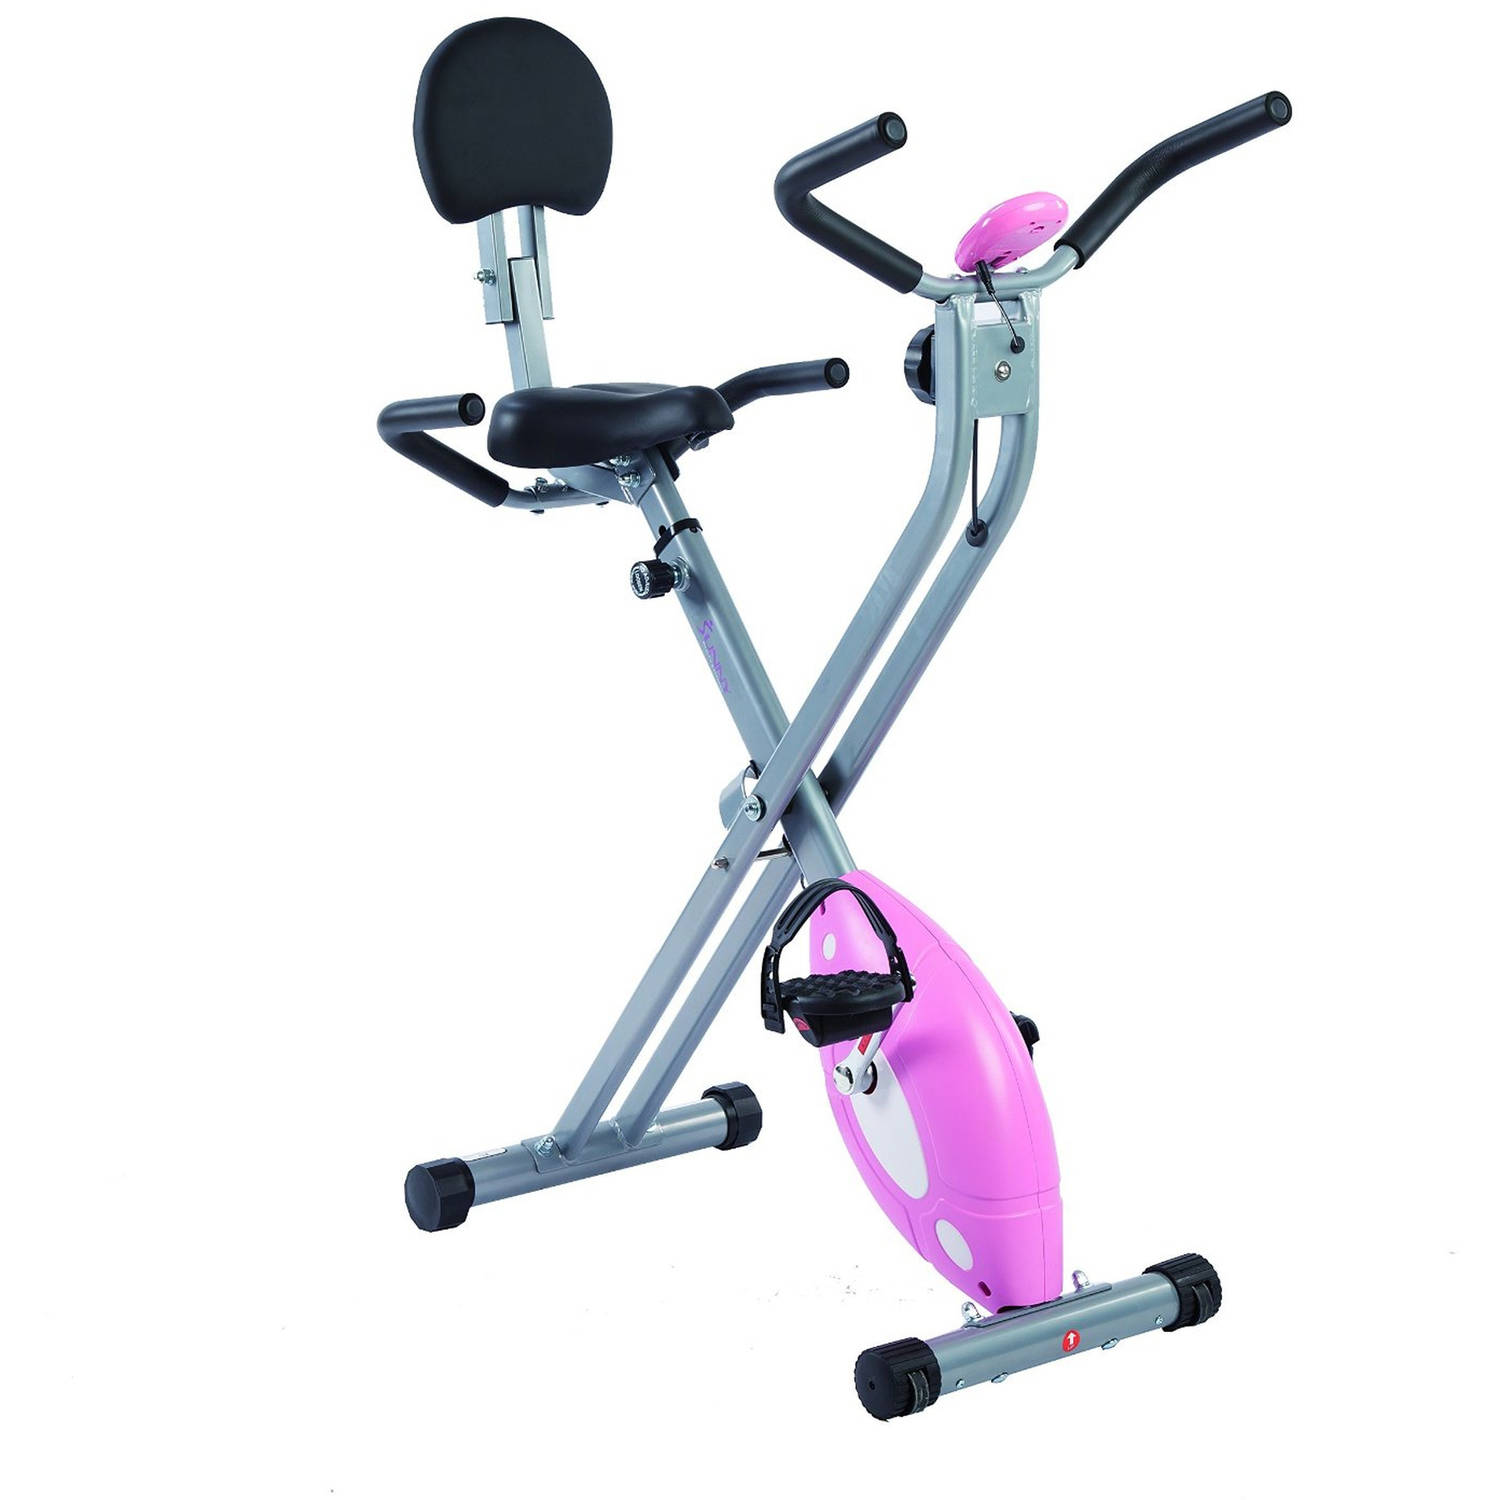 Sunny Health and Fitness SF-RB1117 Folding Recumbent Bike